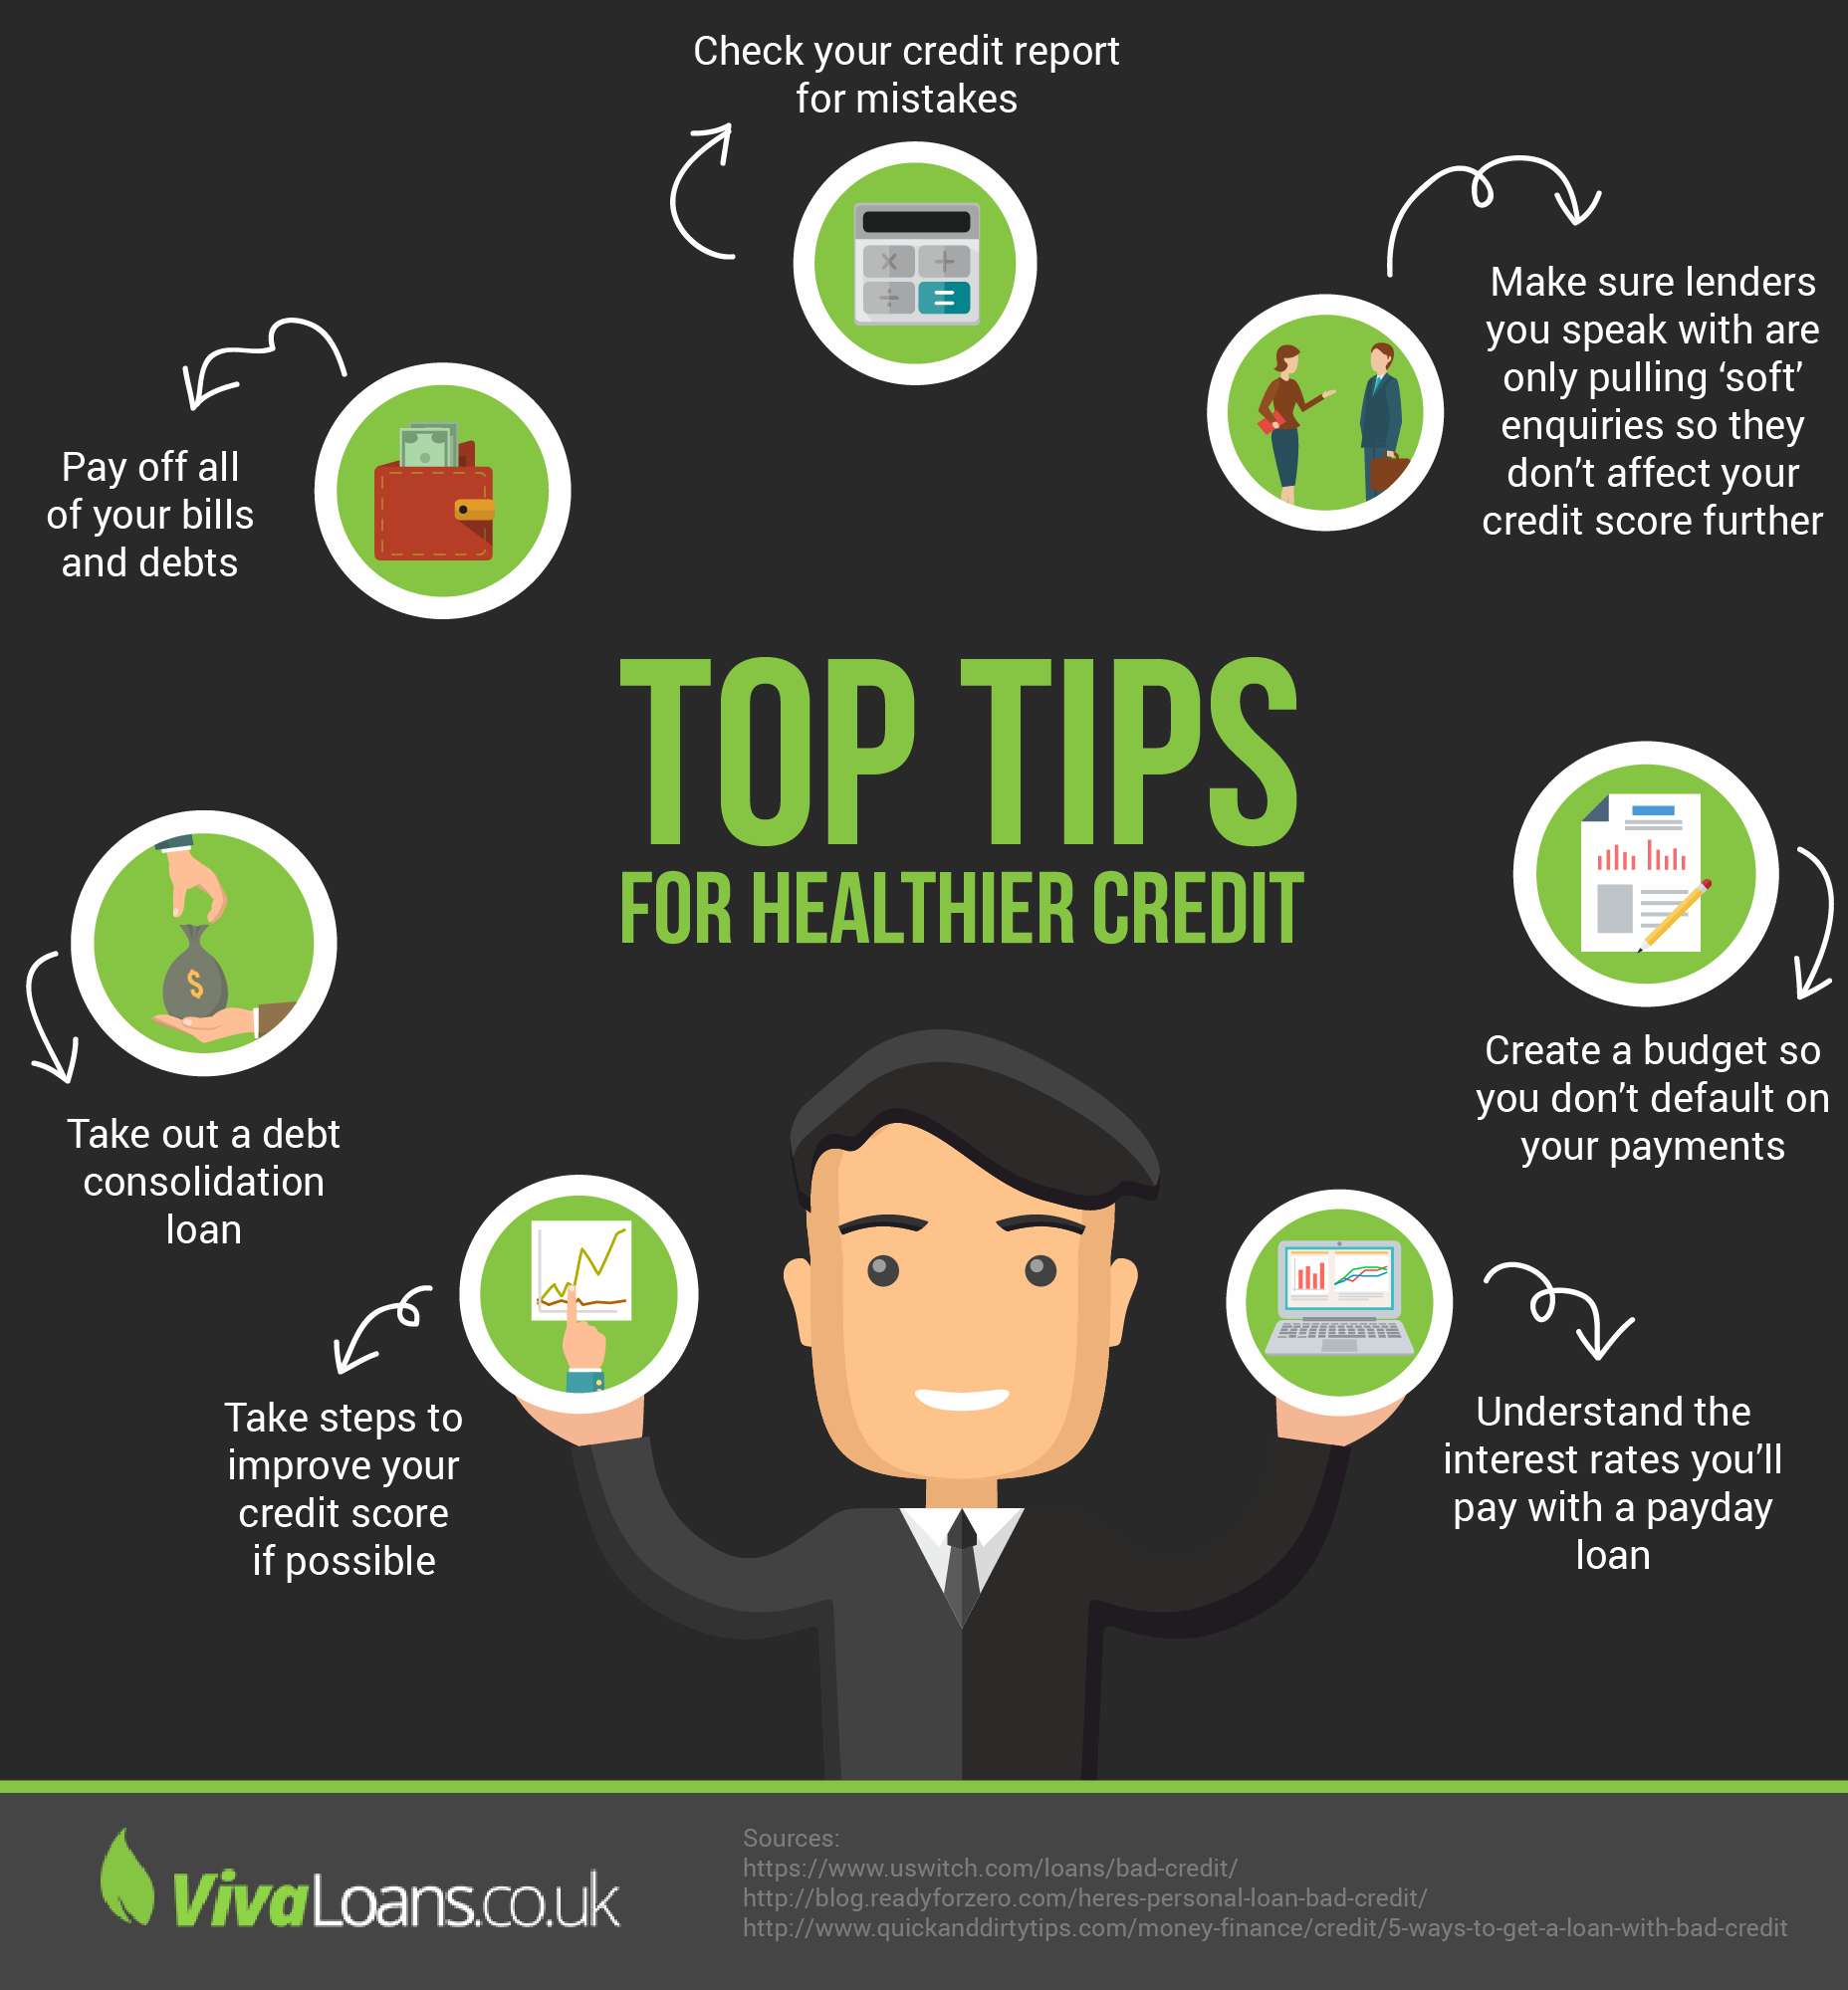 Top Tips for Healthier Credit infographic